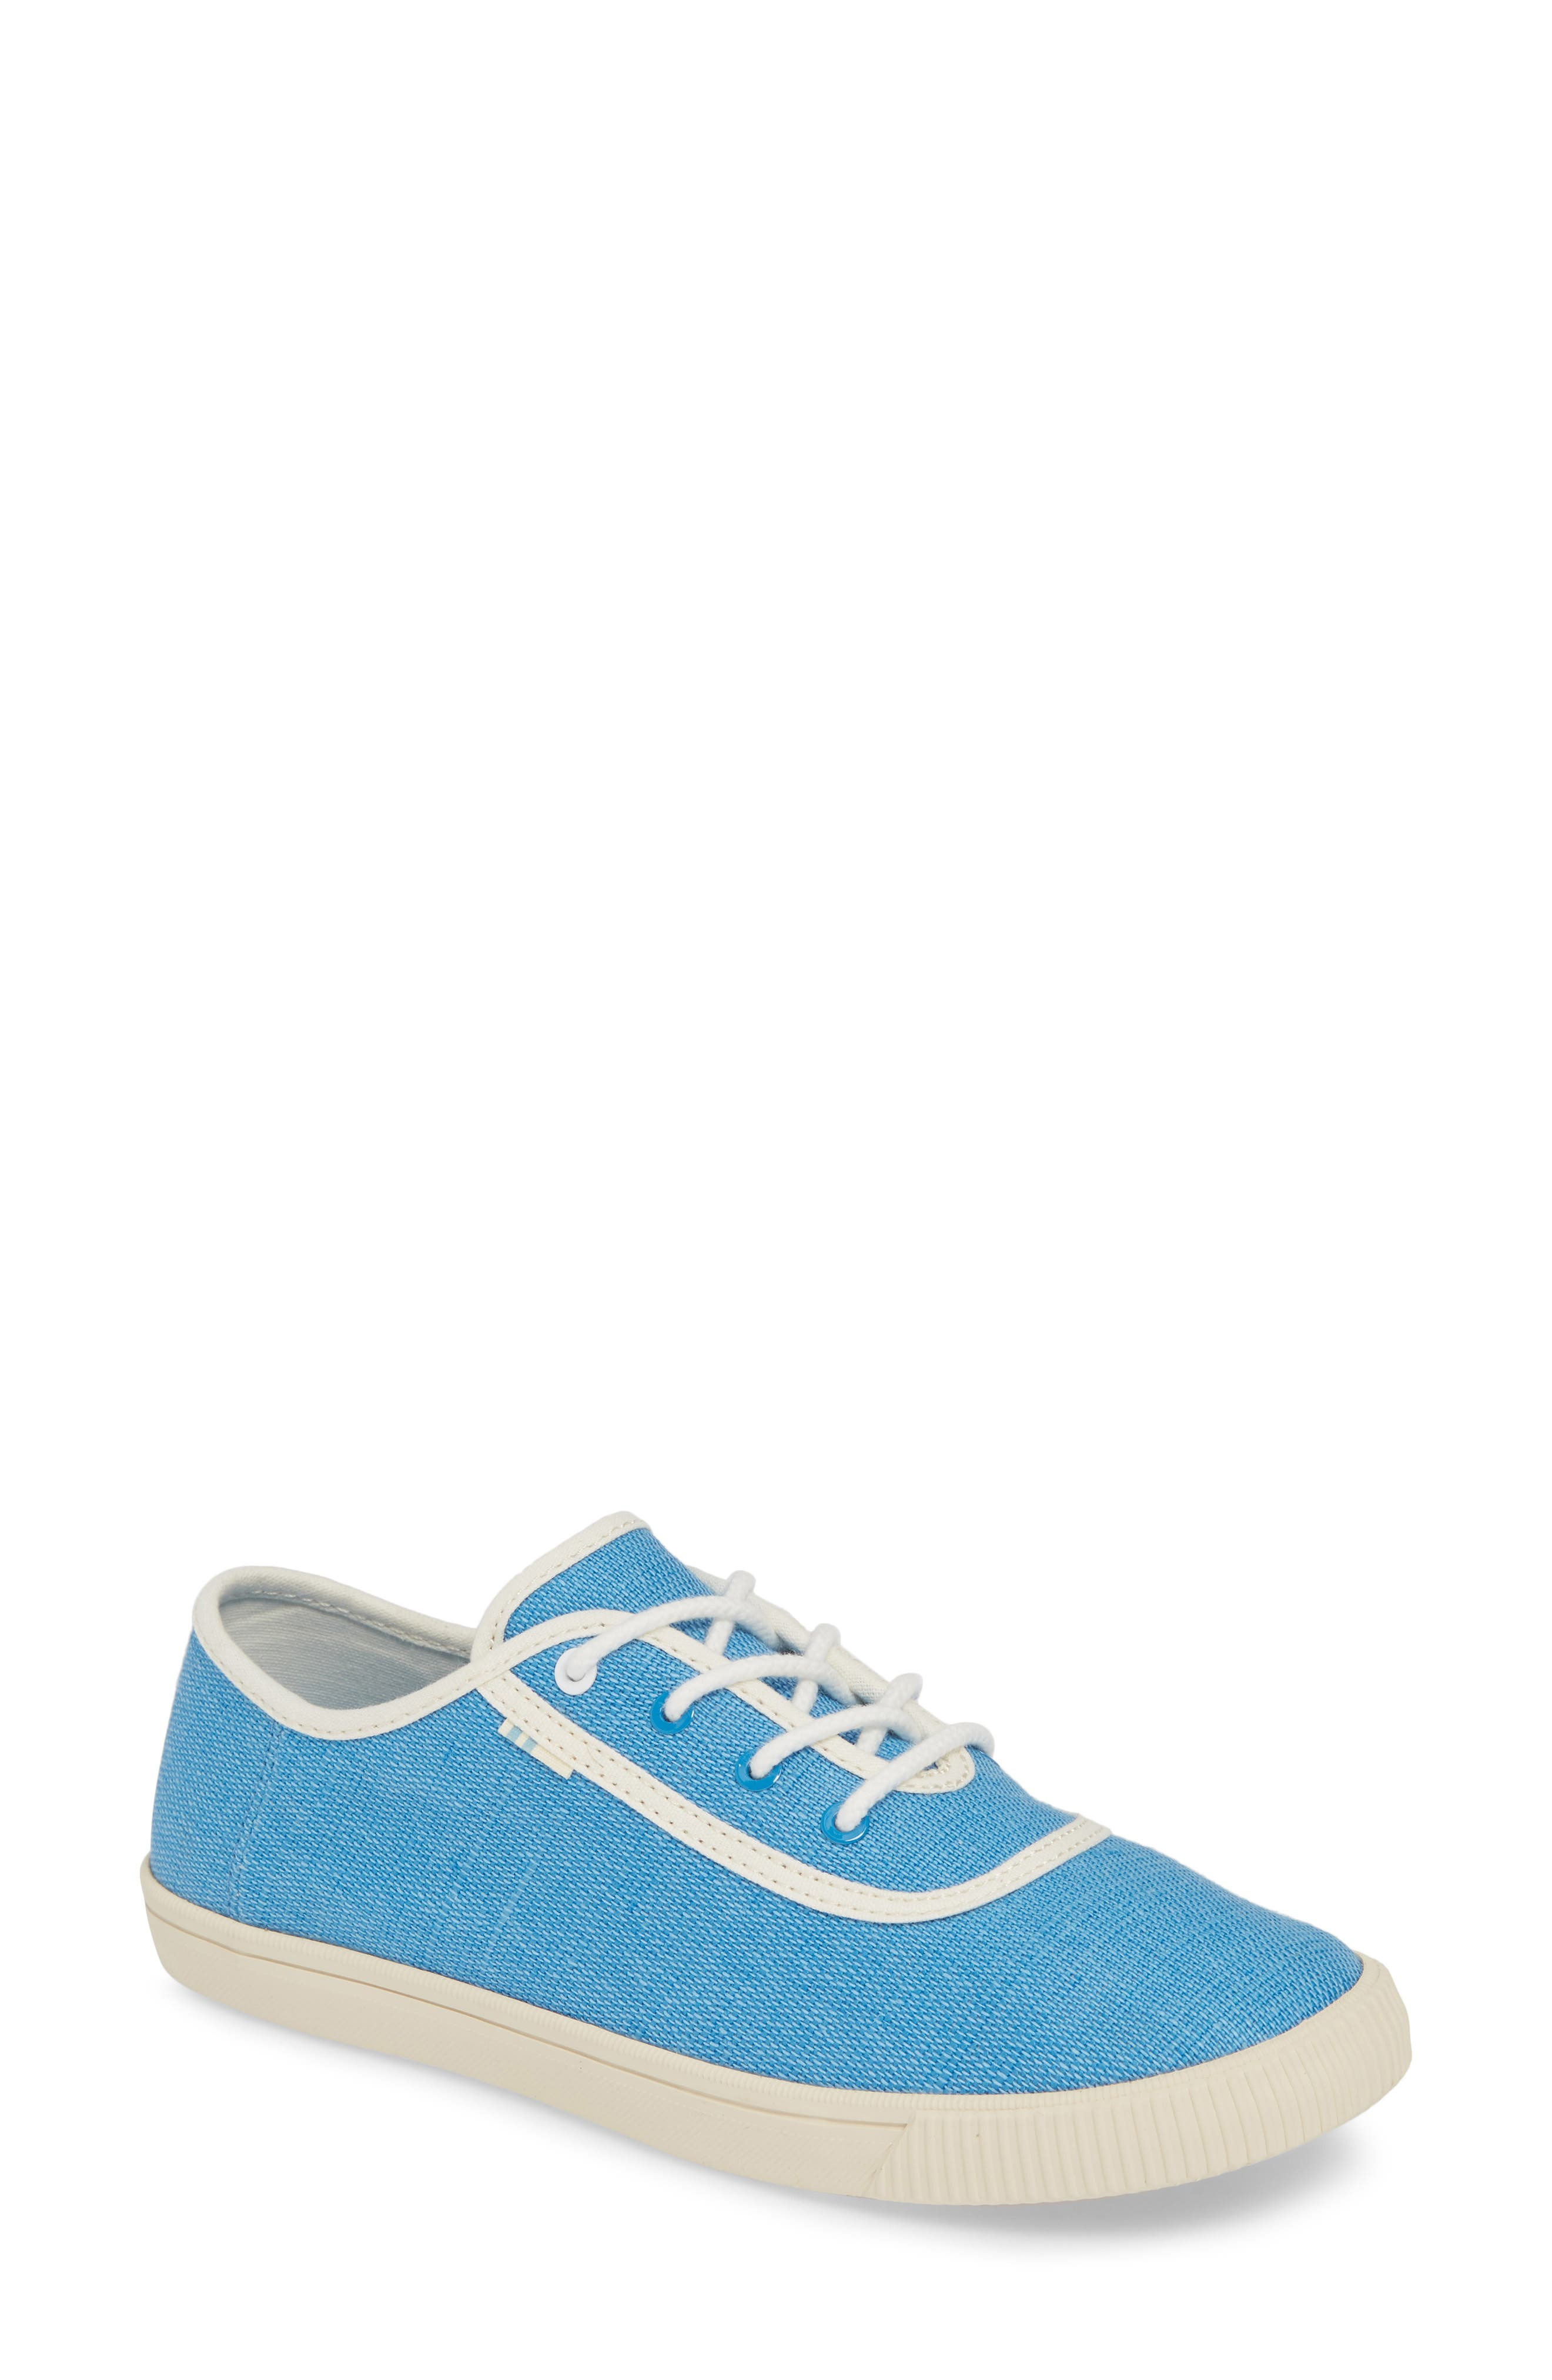 ab11695fc0d TOMS Women s Sneakers